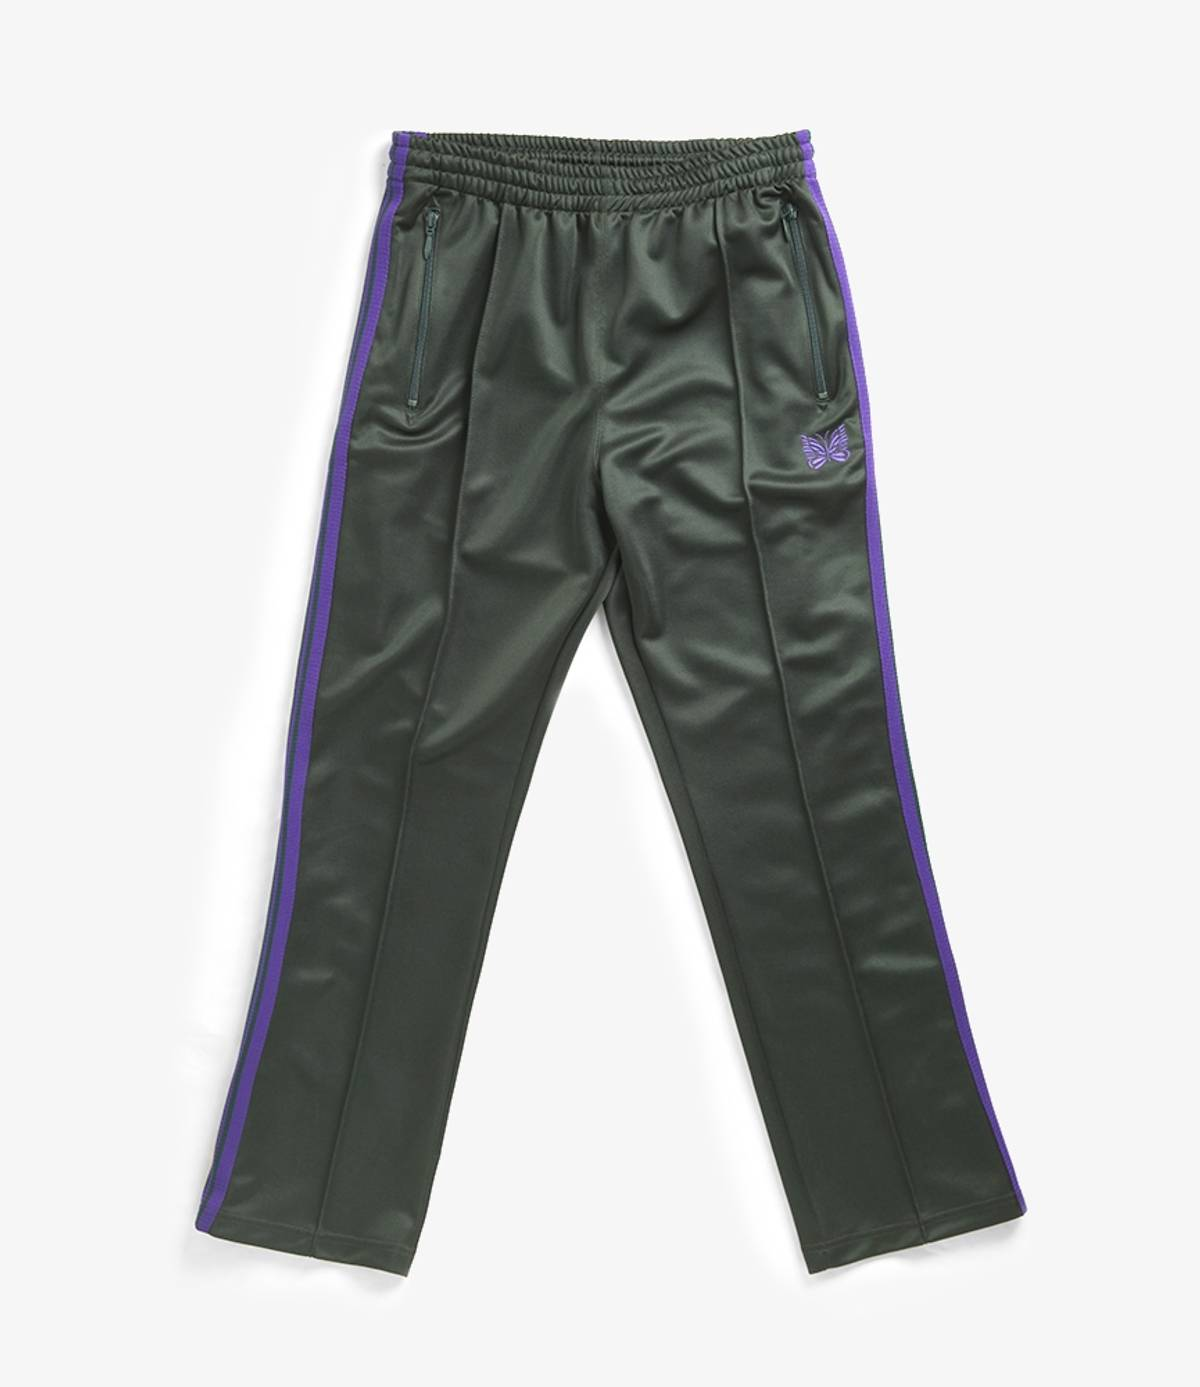 Needles Narrow Track pant poly smooth green purple 18AW Nepenthes made in Japan